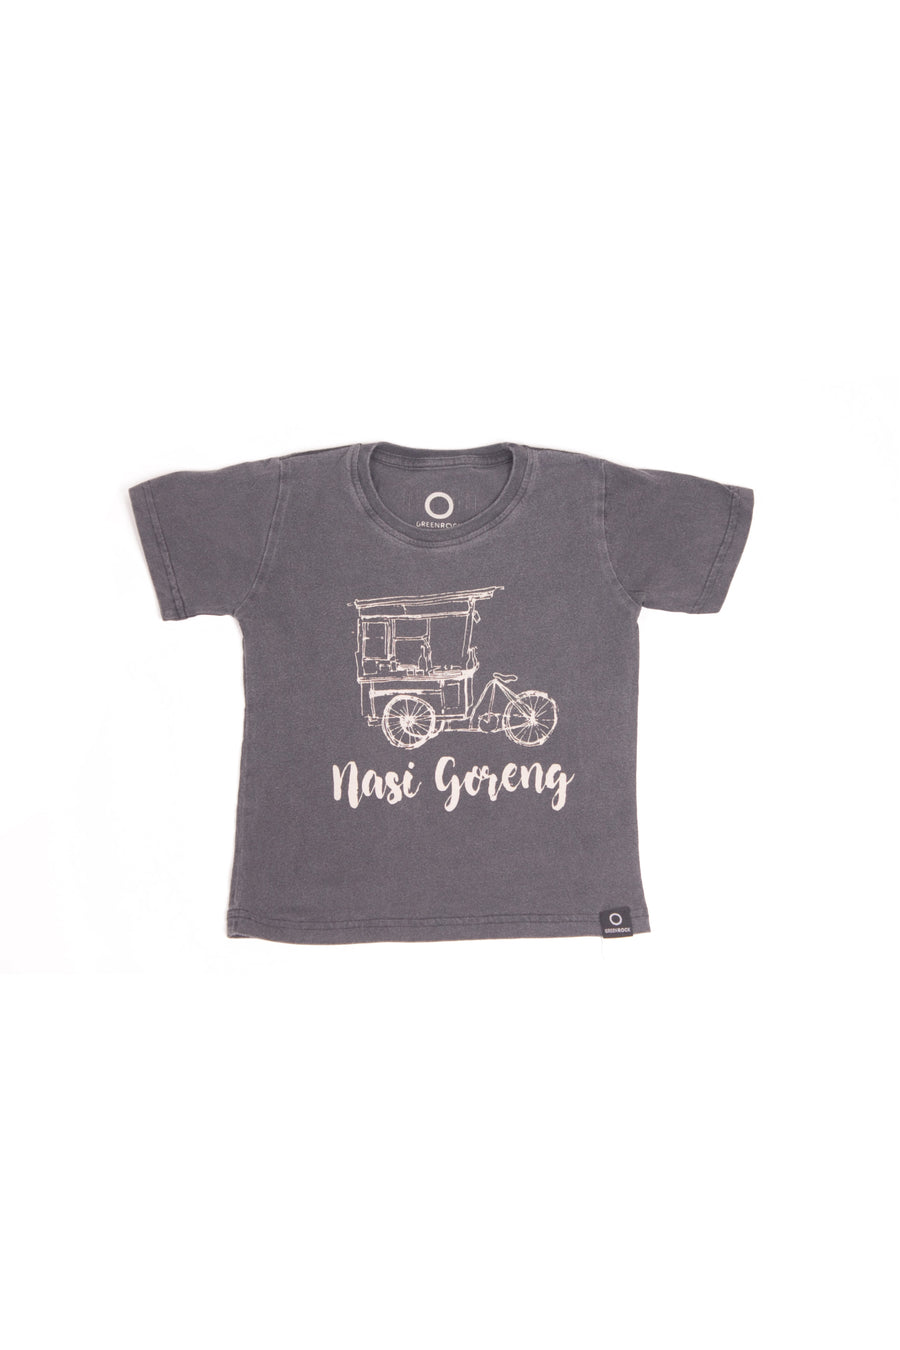 T-Shirt Kids Nasi Goreng Black Wash